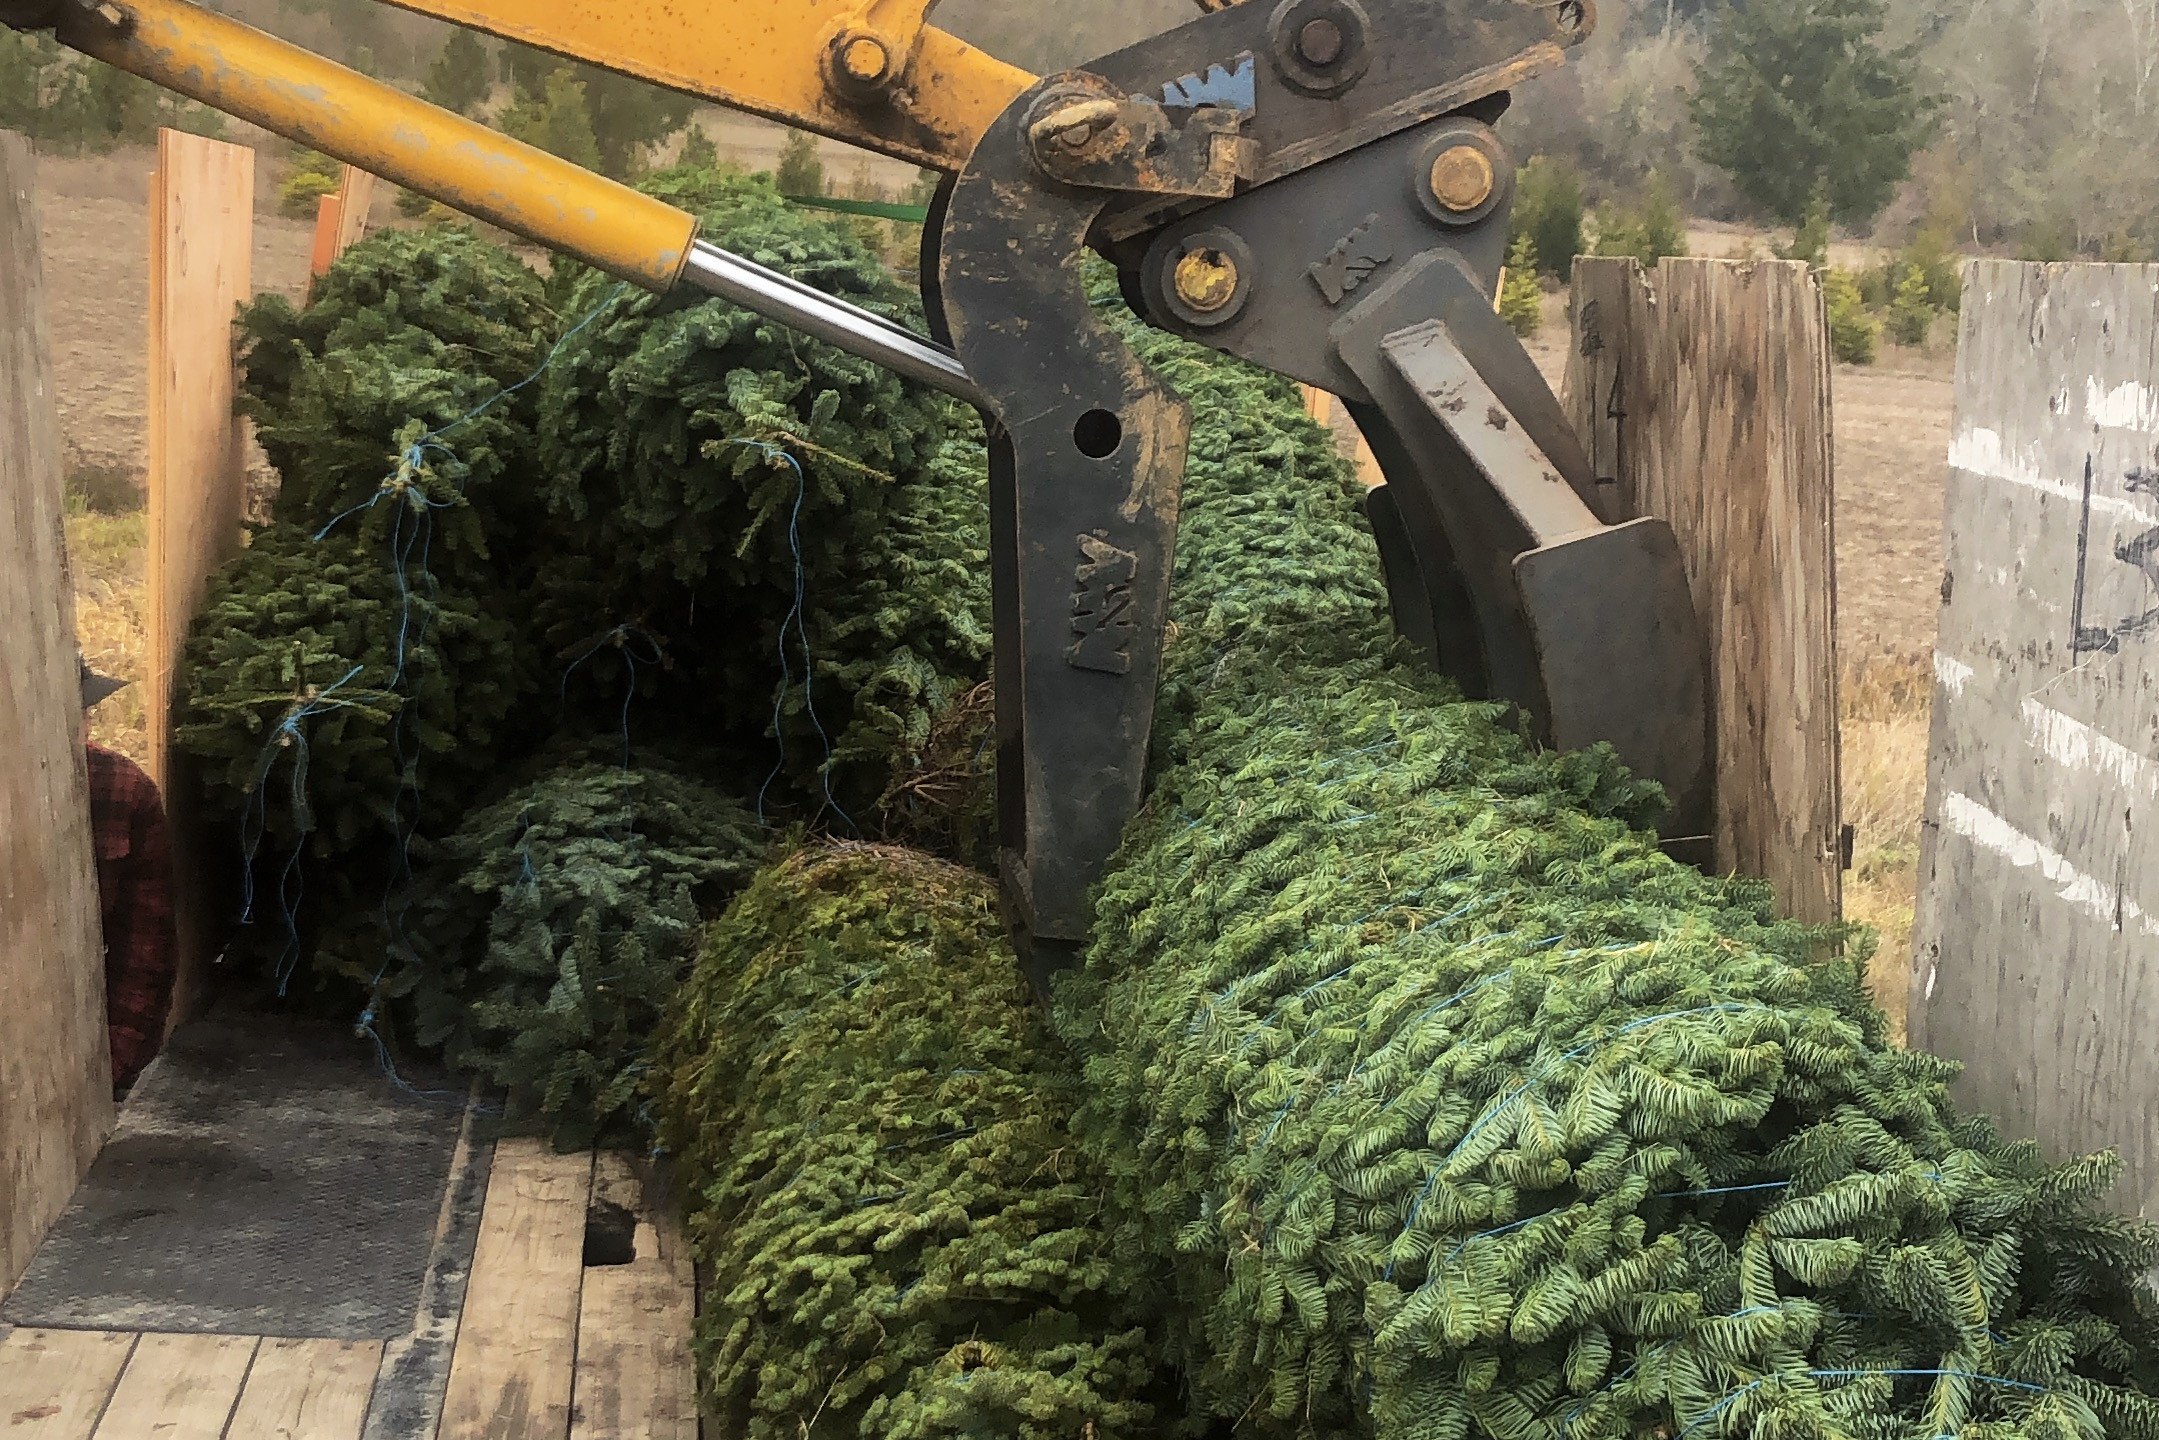 Loading large Christmas trees in trailer